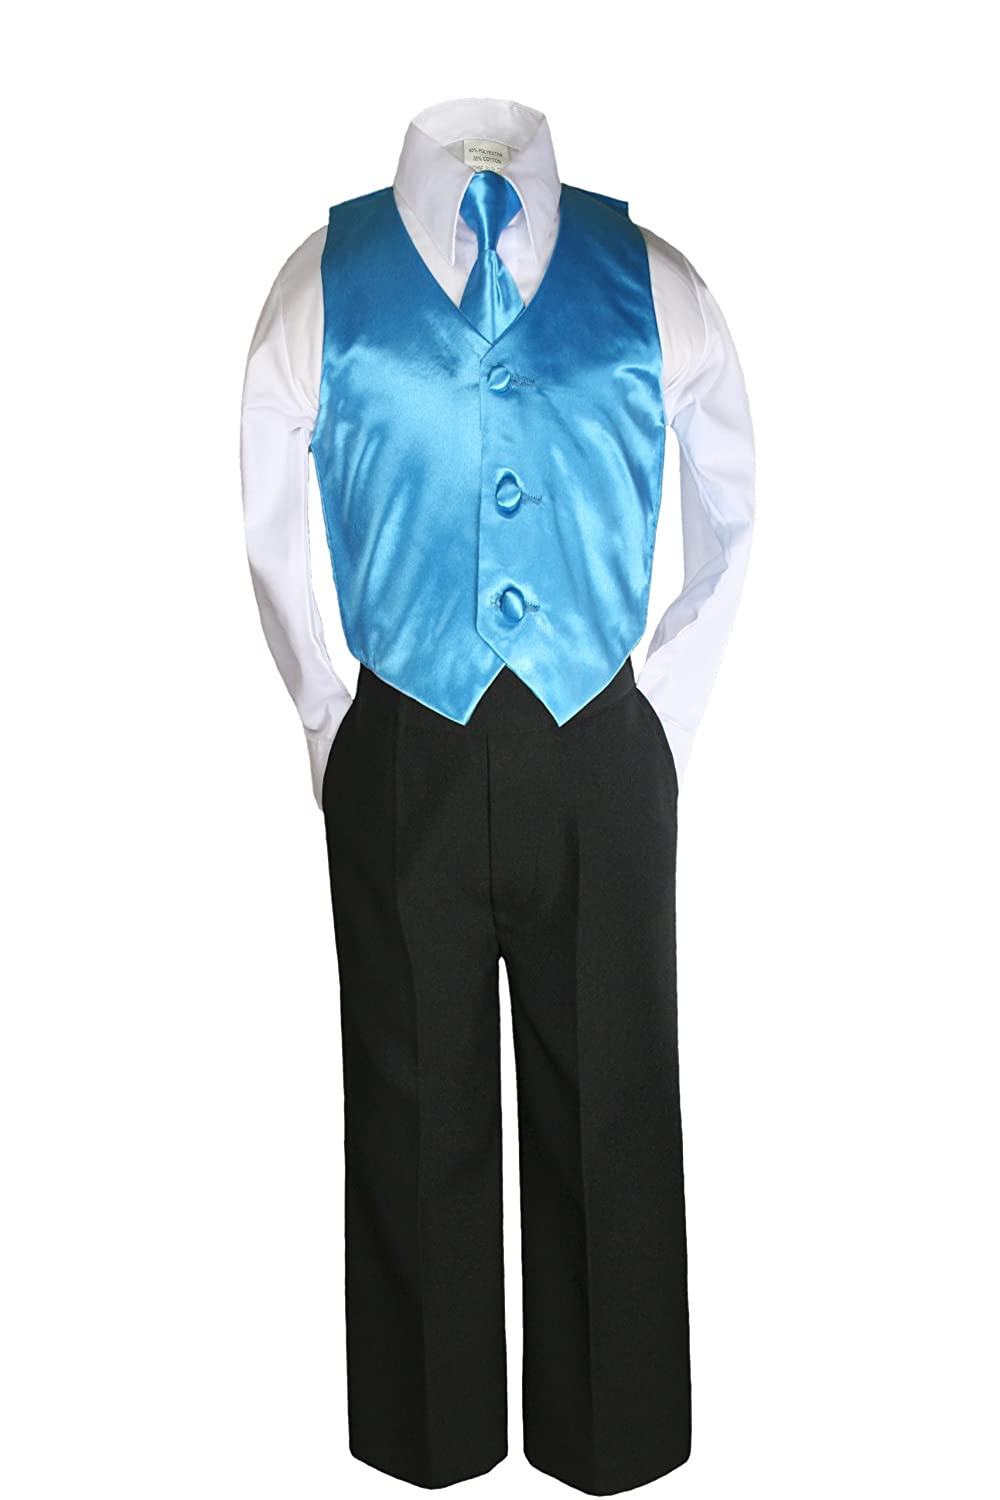 Unotux 7pc Boys Black Suit with Satin Turquoise Vest Set from Baby to Teen